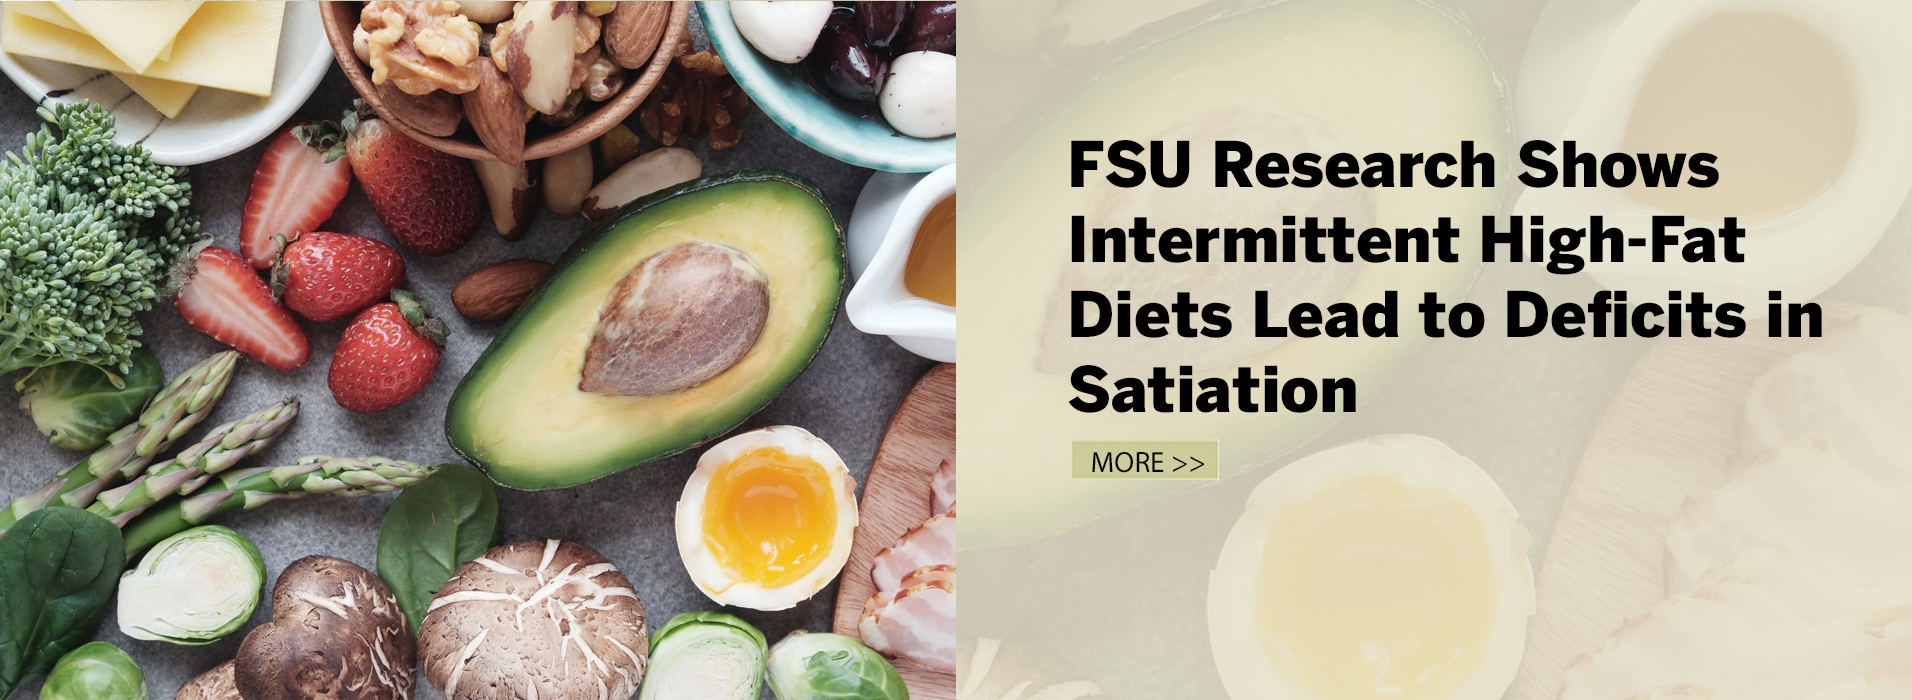 FSU Research Shows Intermittent High-Fat Diets Lead to Deficits in Satiation